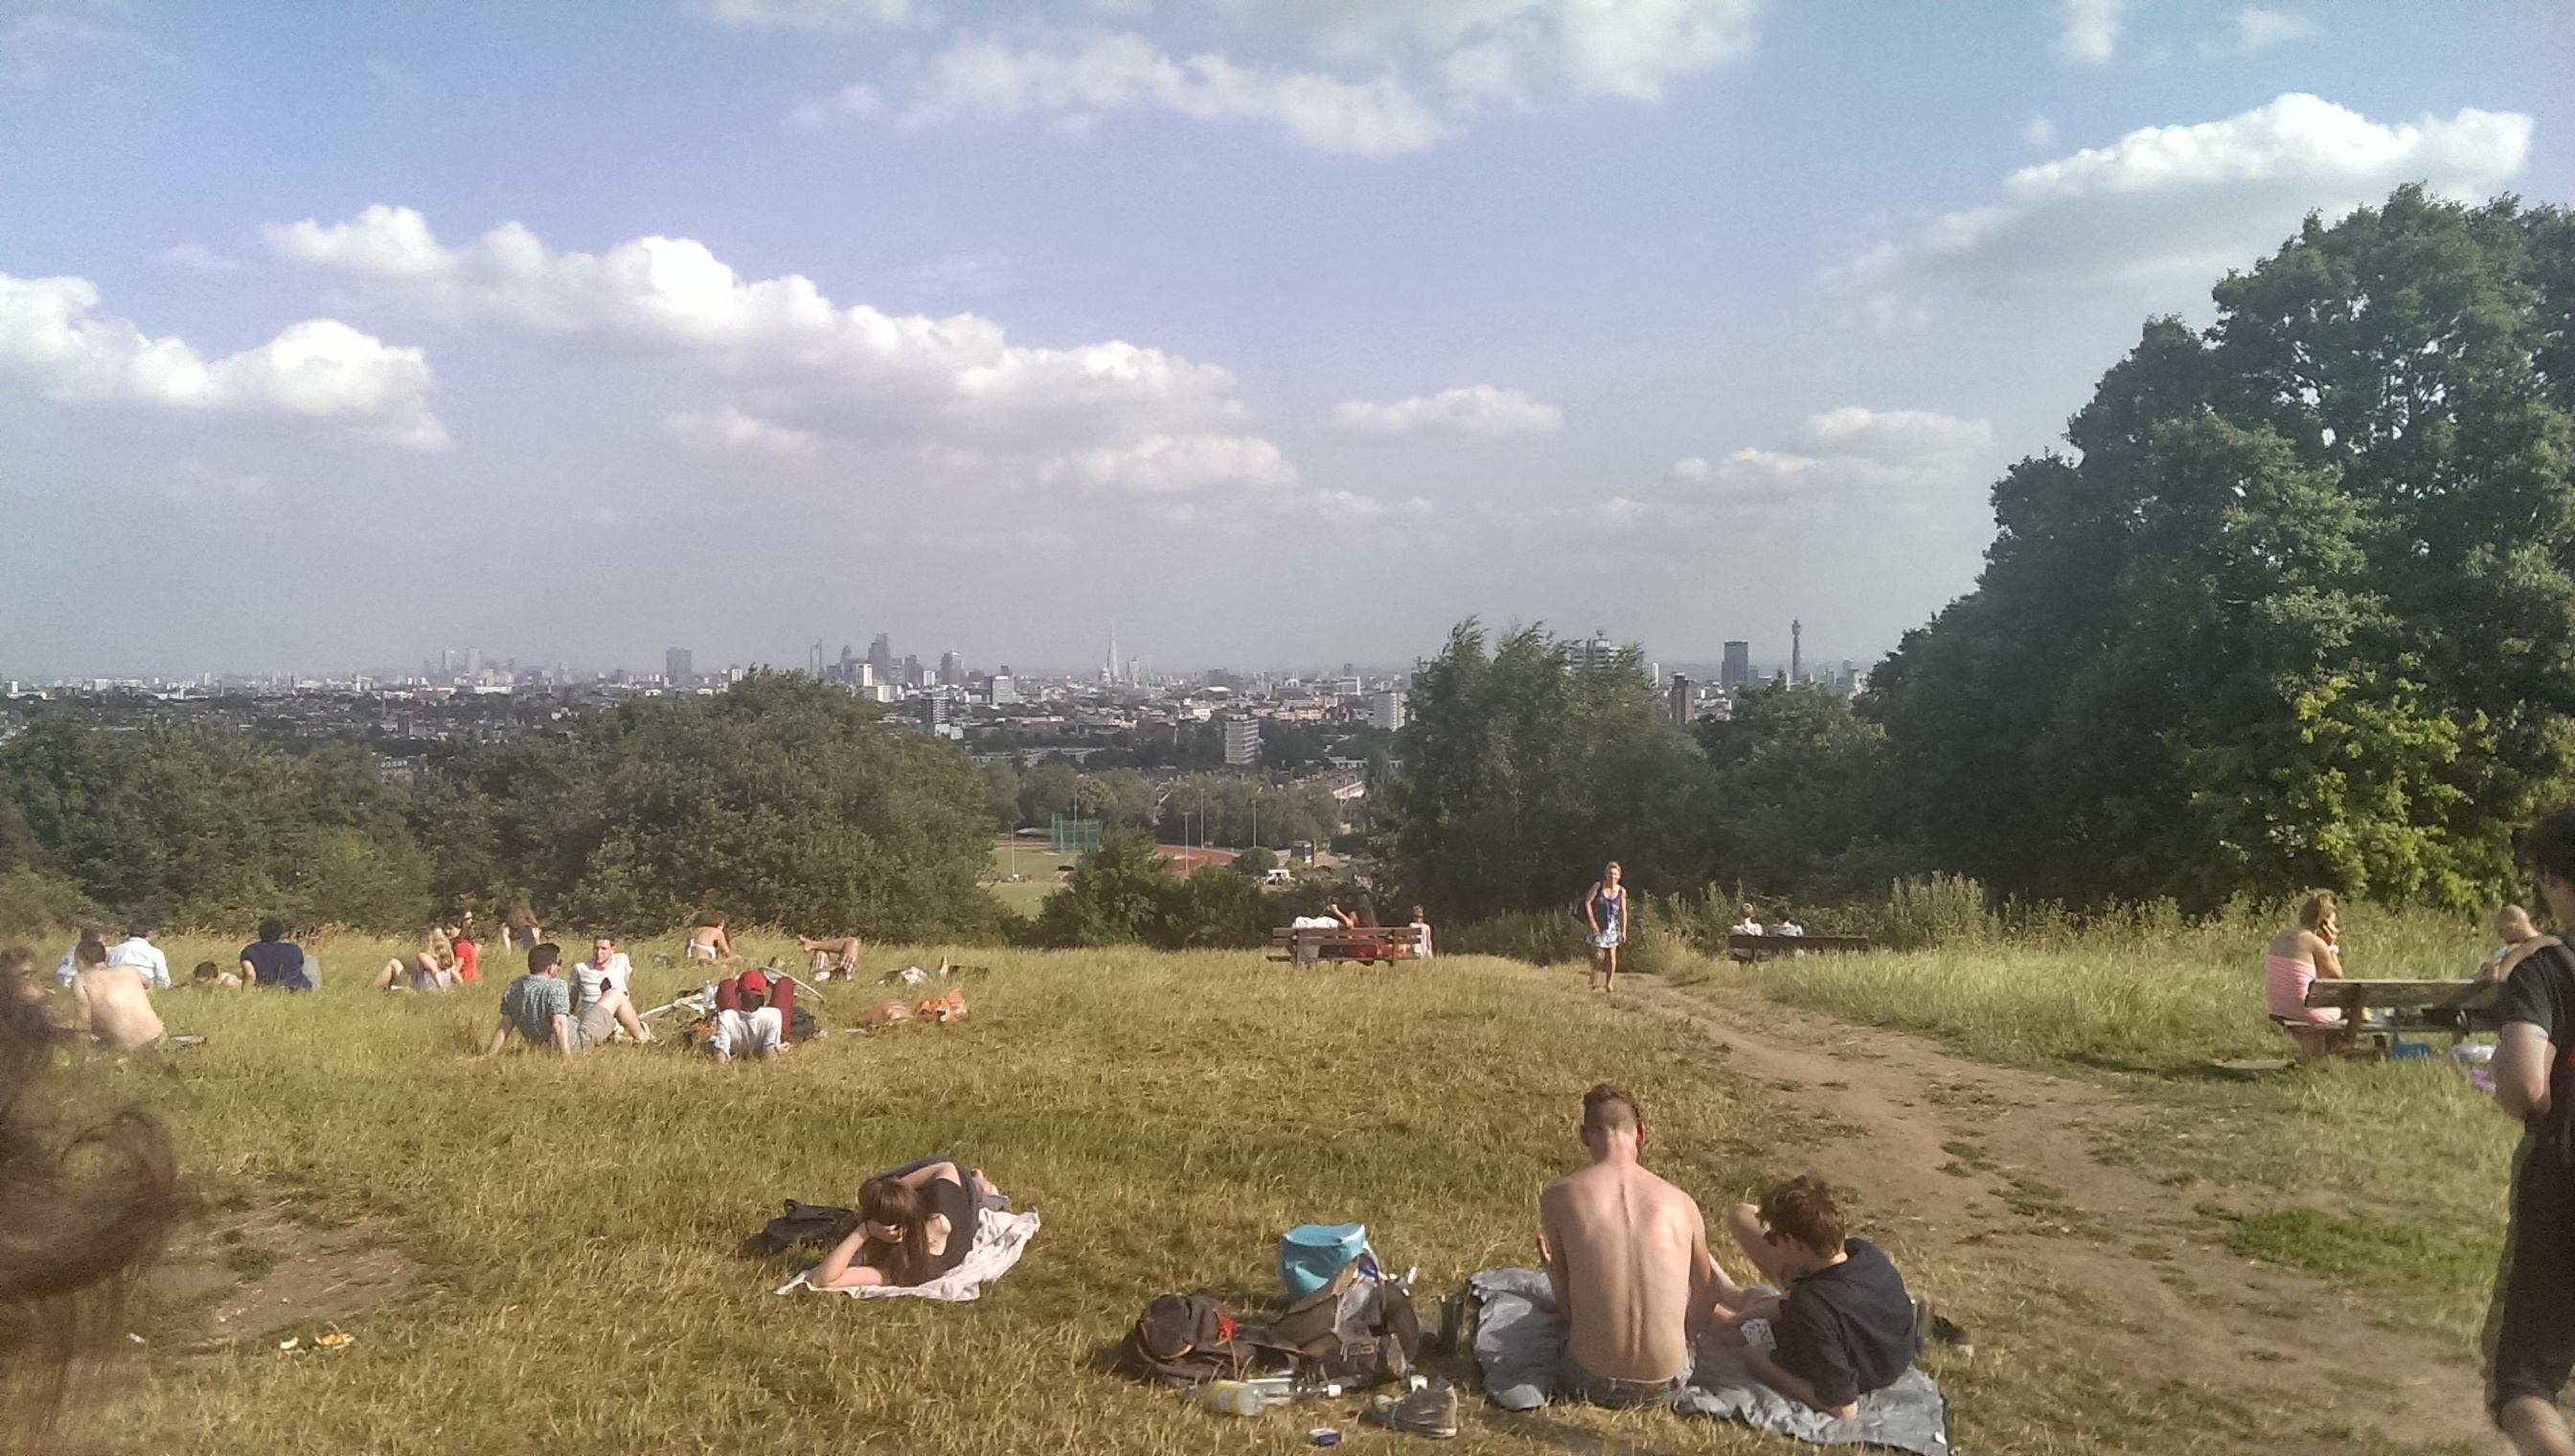 Summer in London views from Hampstead Heath and Ealing  russellskitchen